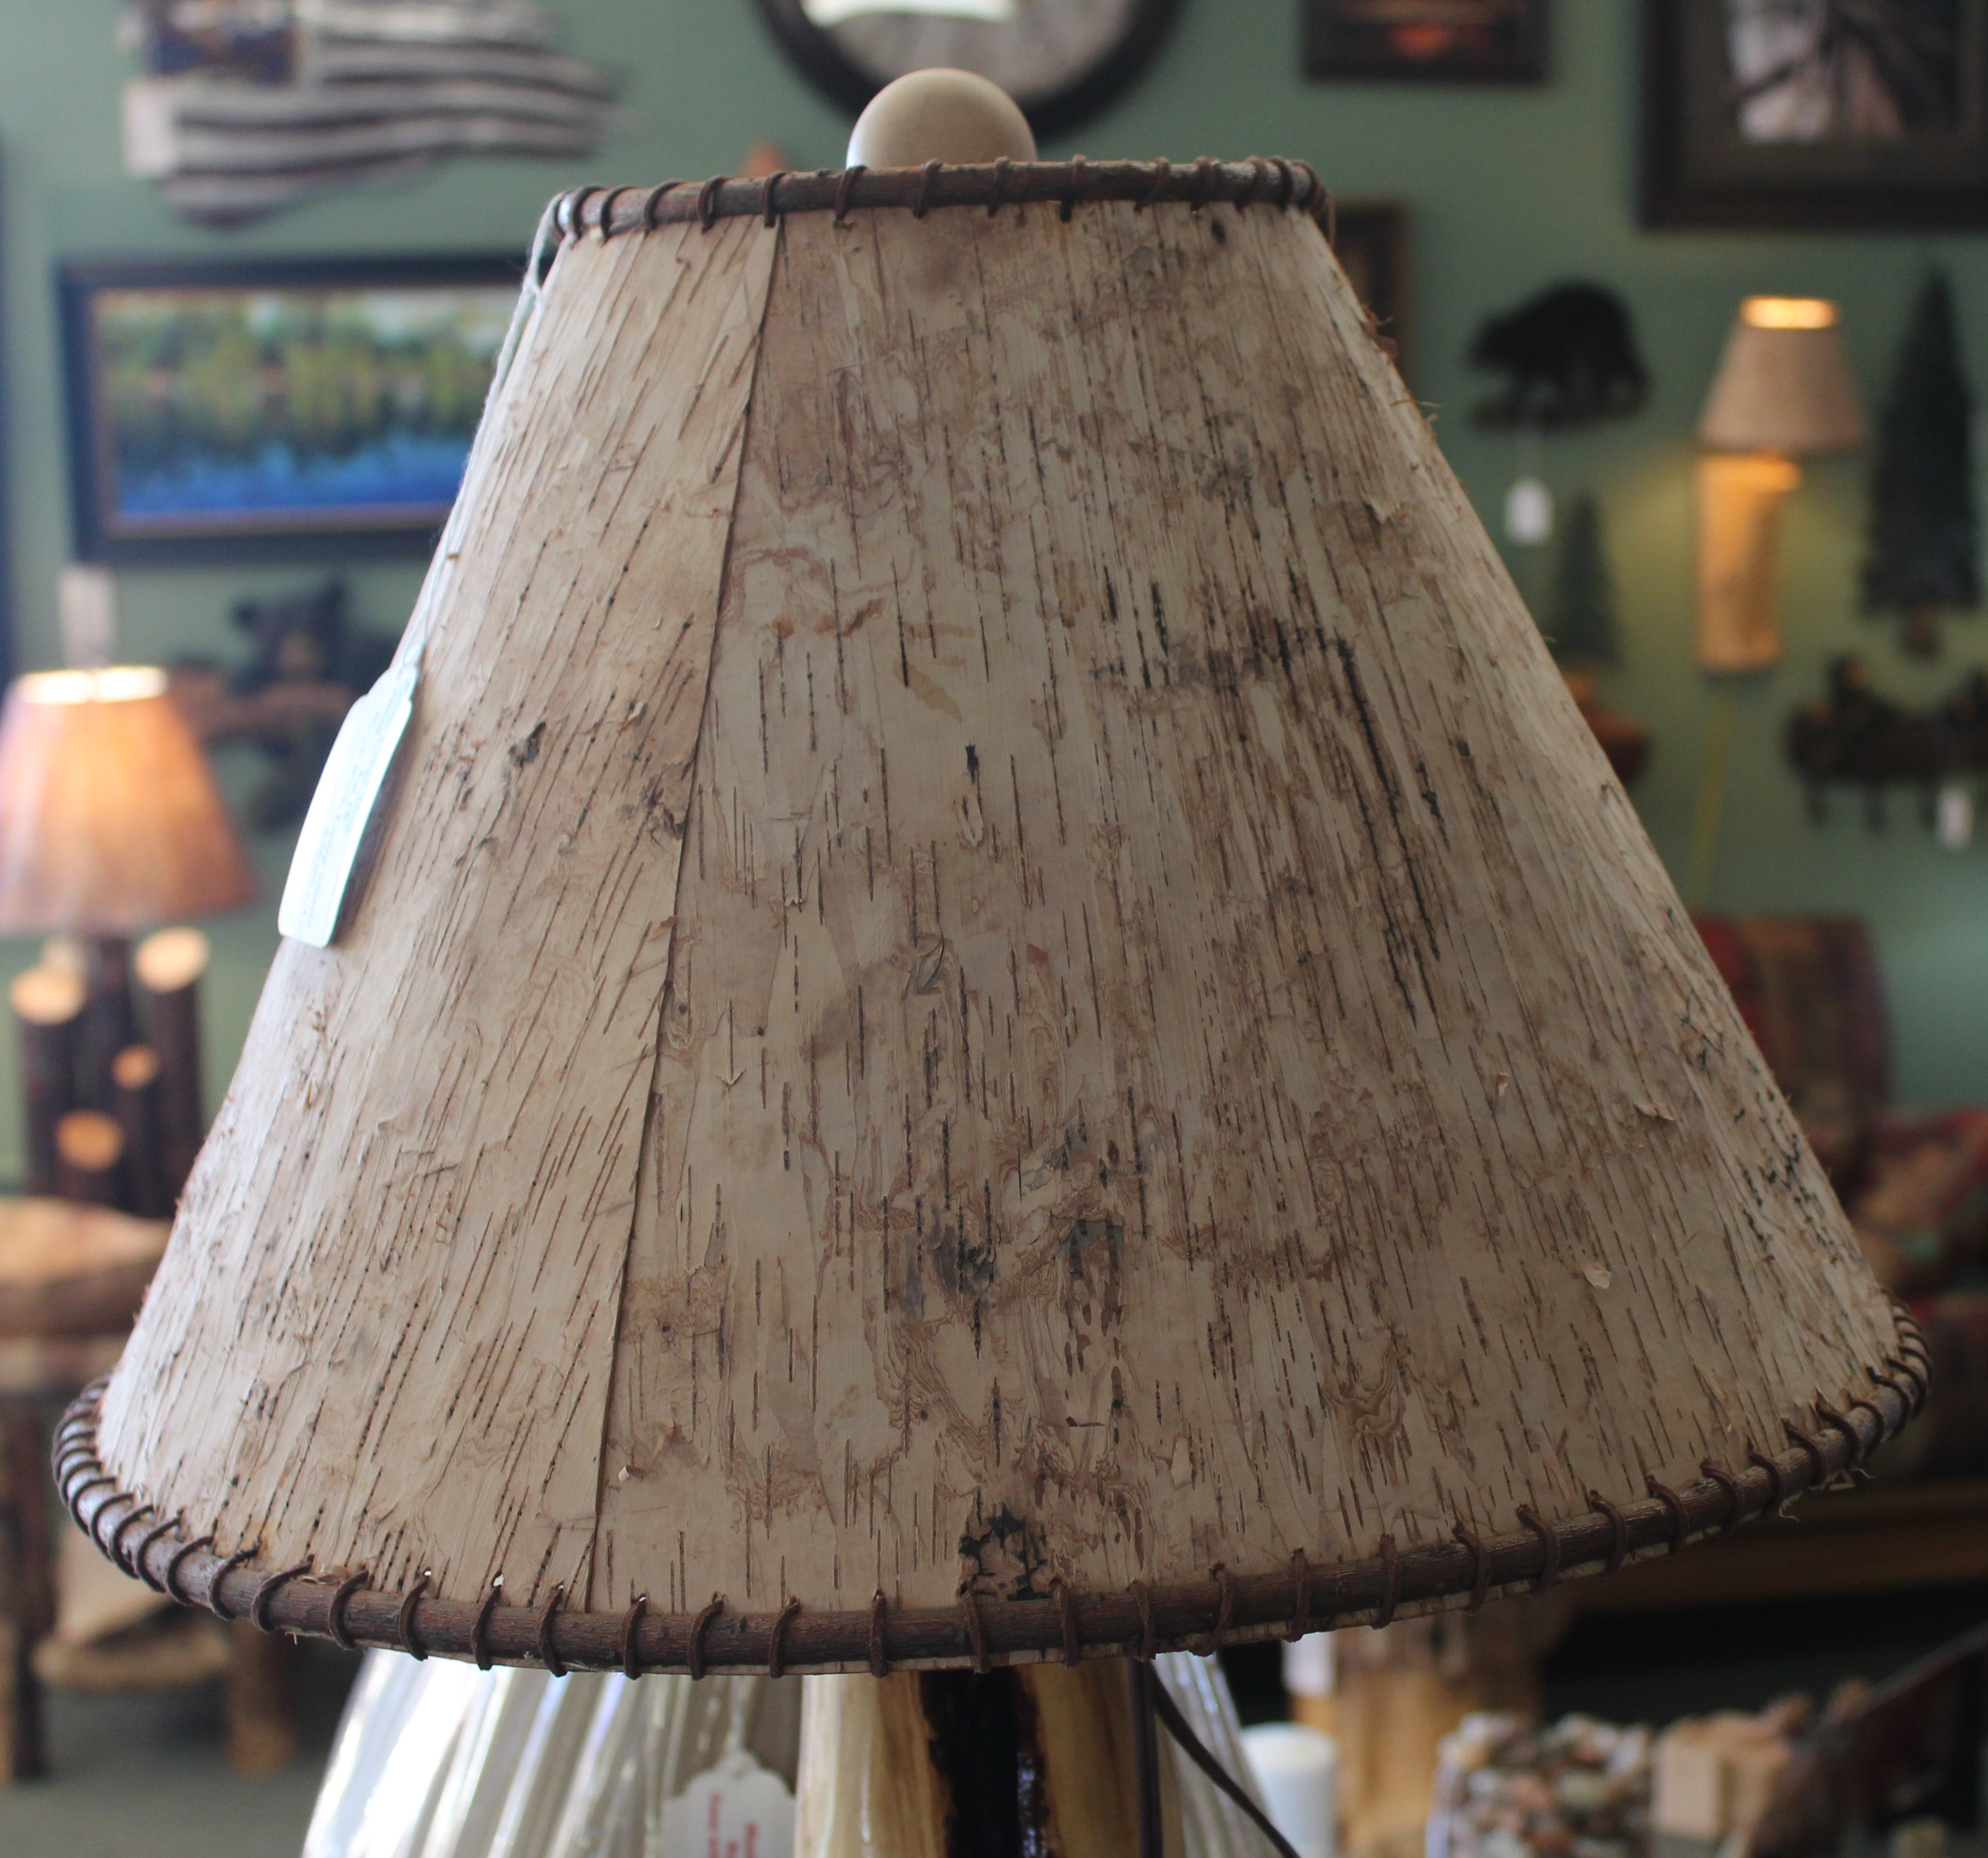 Birch bark lamp shade